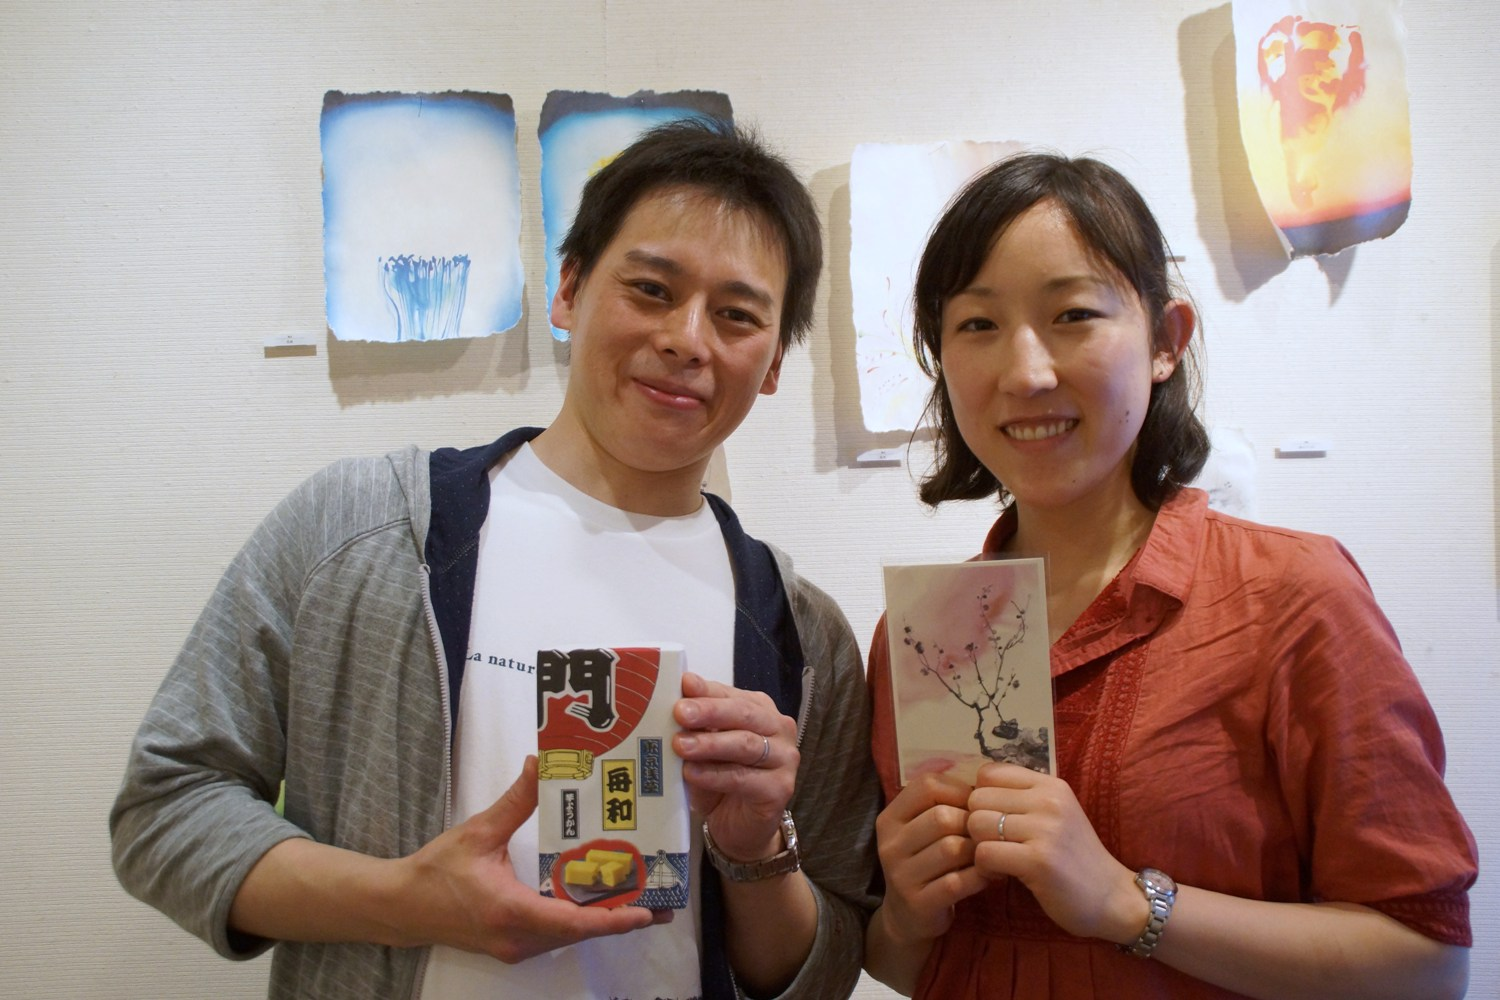 Art Session6人展2日目~ル リスとノリエット・黒澤明研究会~今日30日(水)も大歓迎@GALLERY STAGE-1_f0006713_7441895.jpg